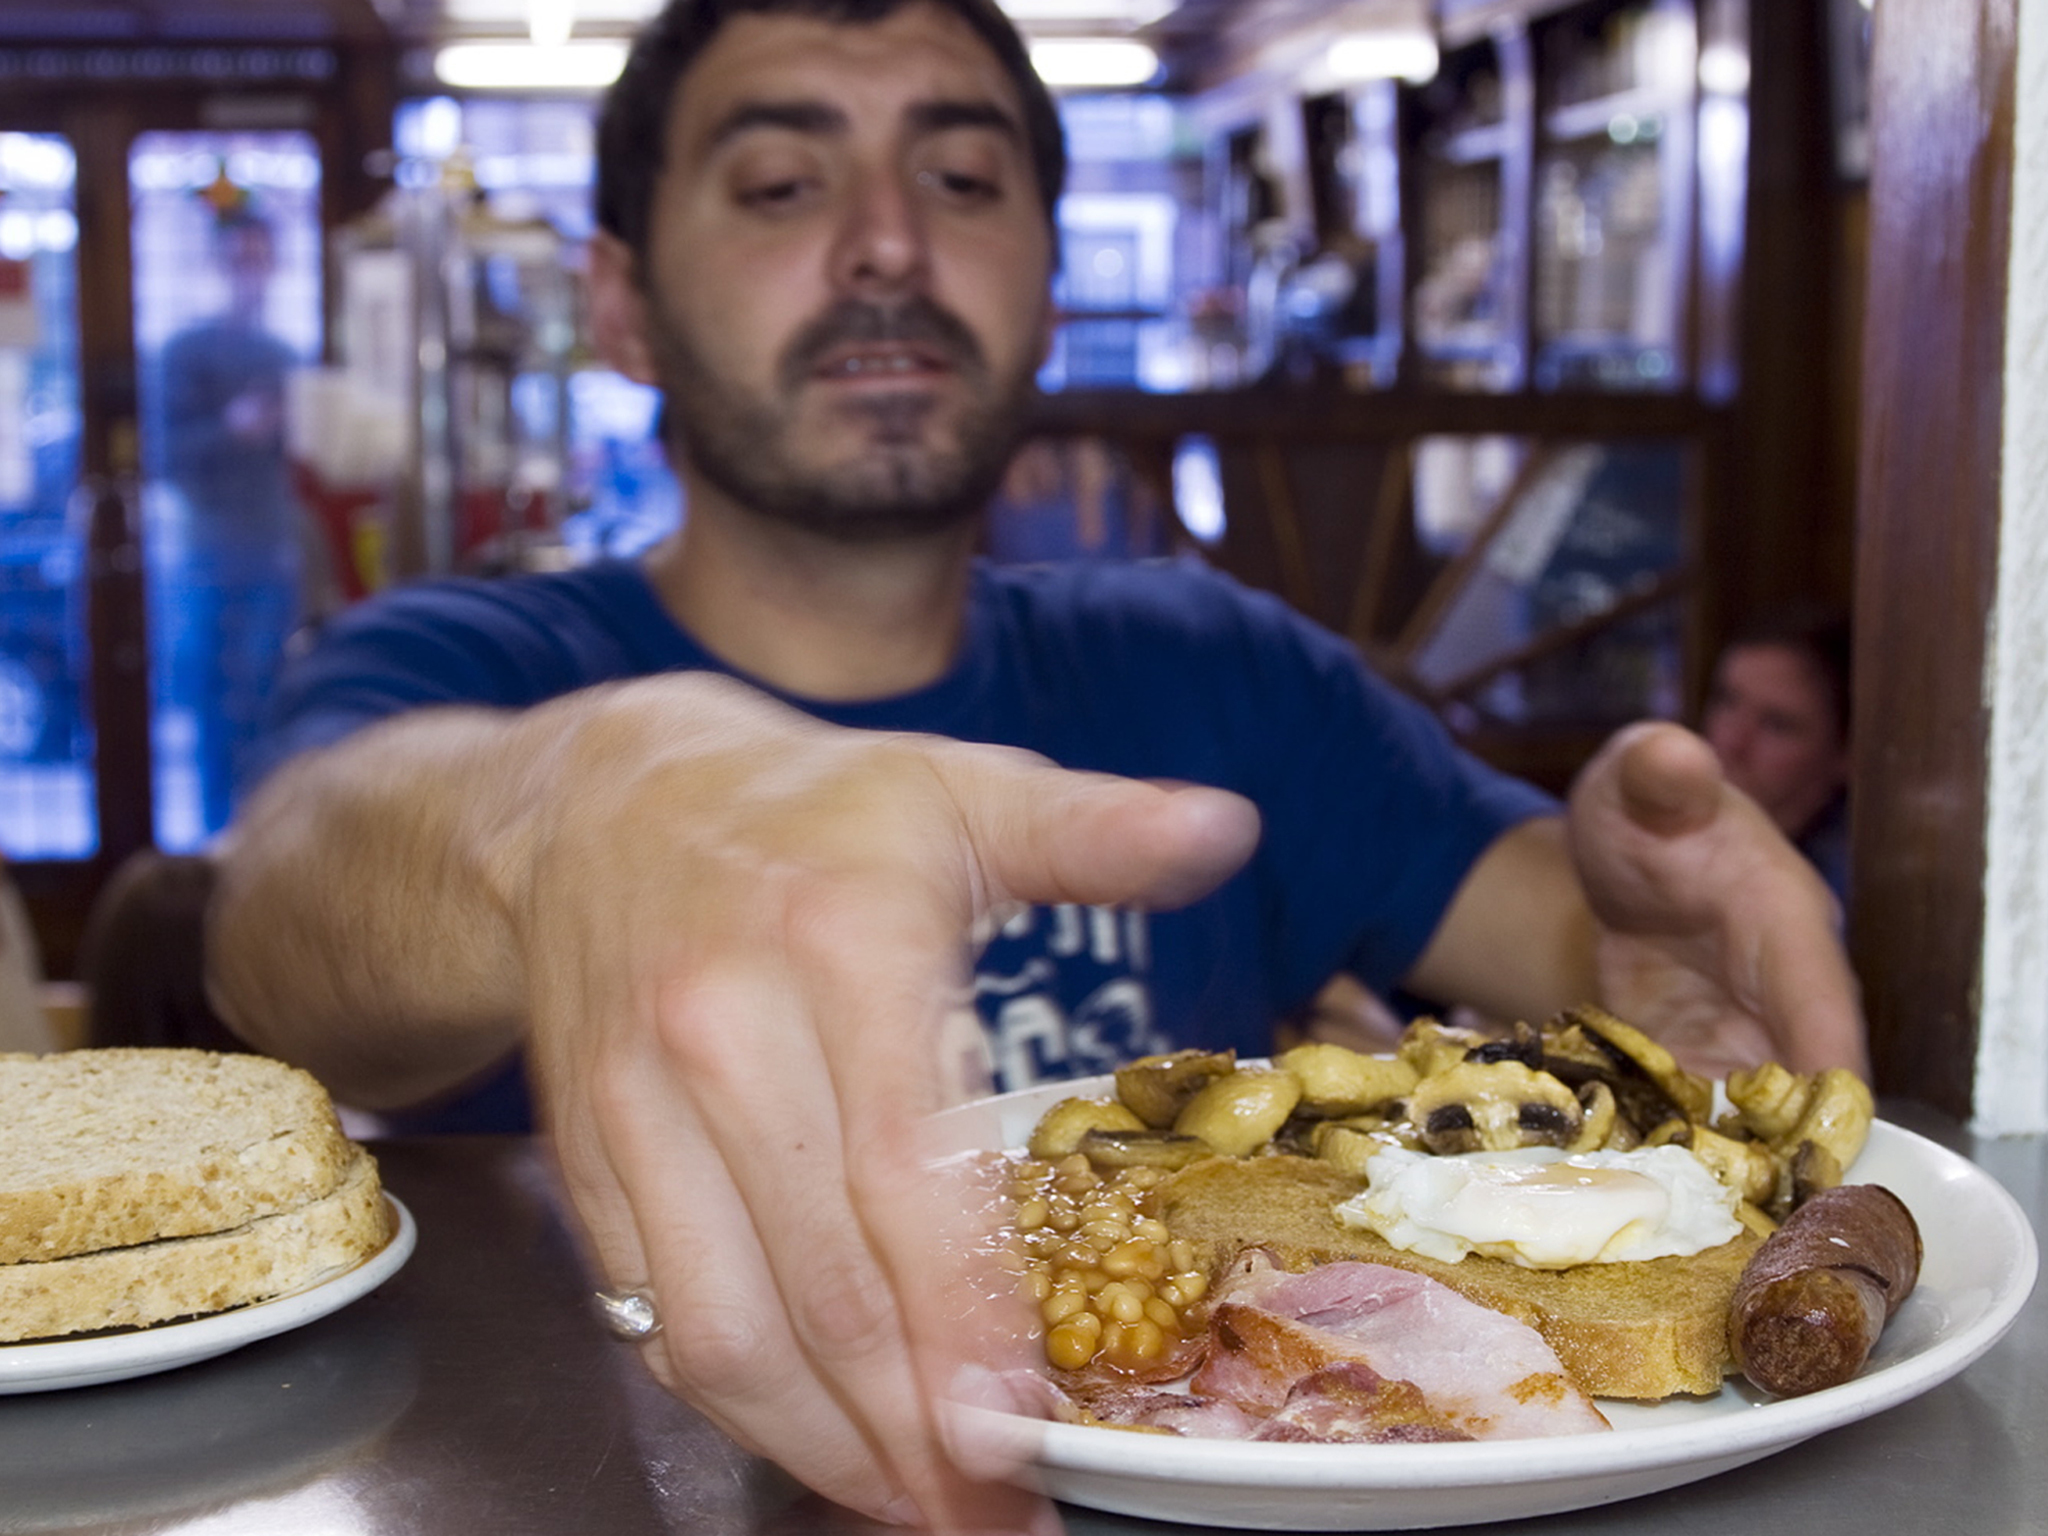 London's best full english breakfasts, fry ups, e pellicci